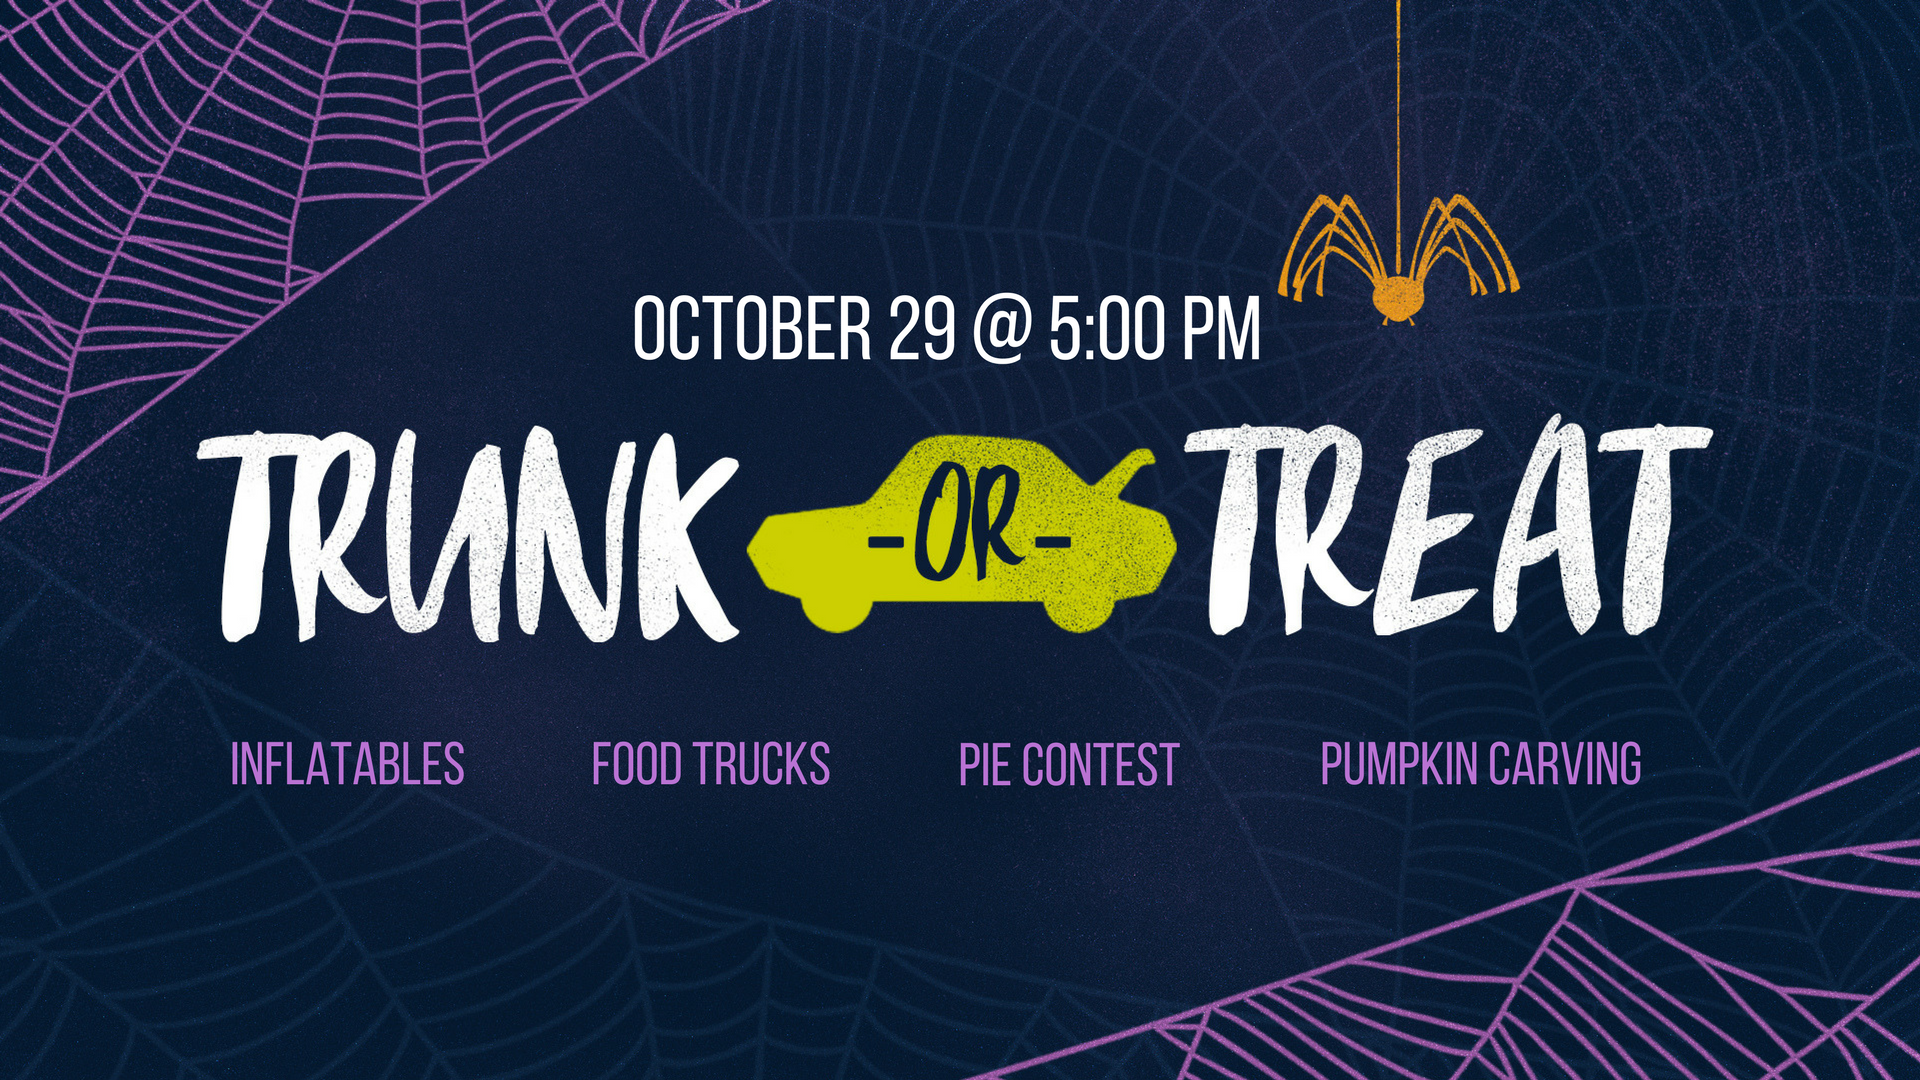 Trunk or treat 1920x1080